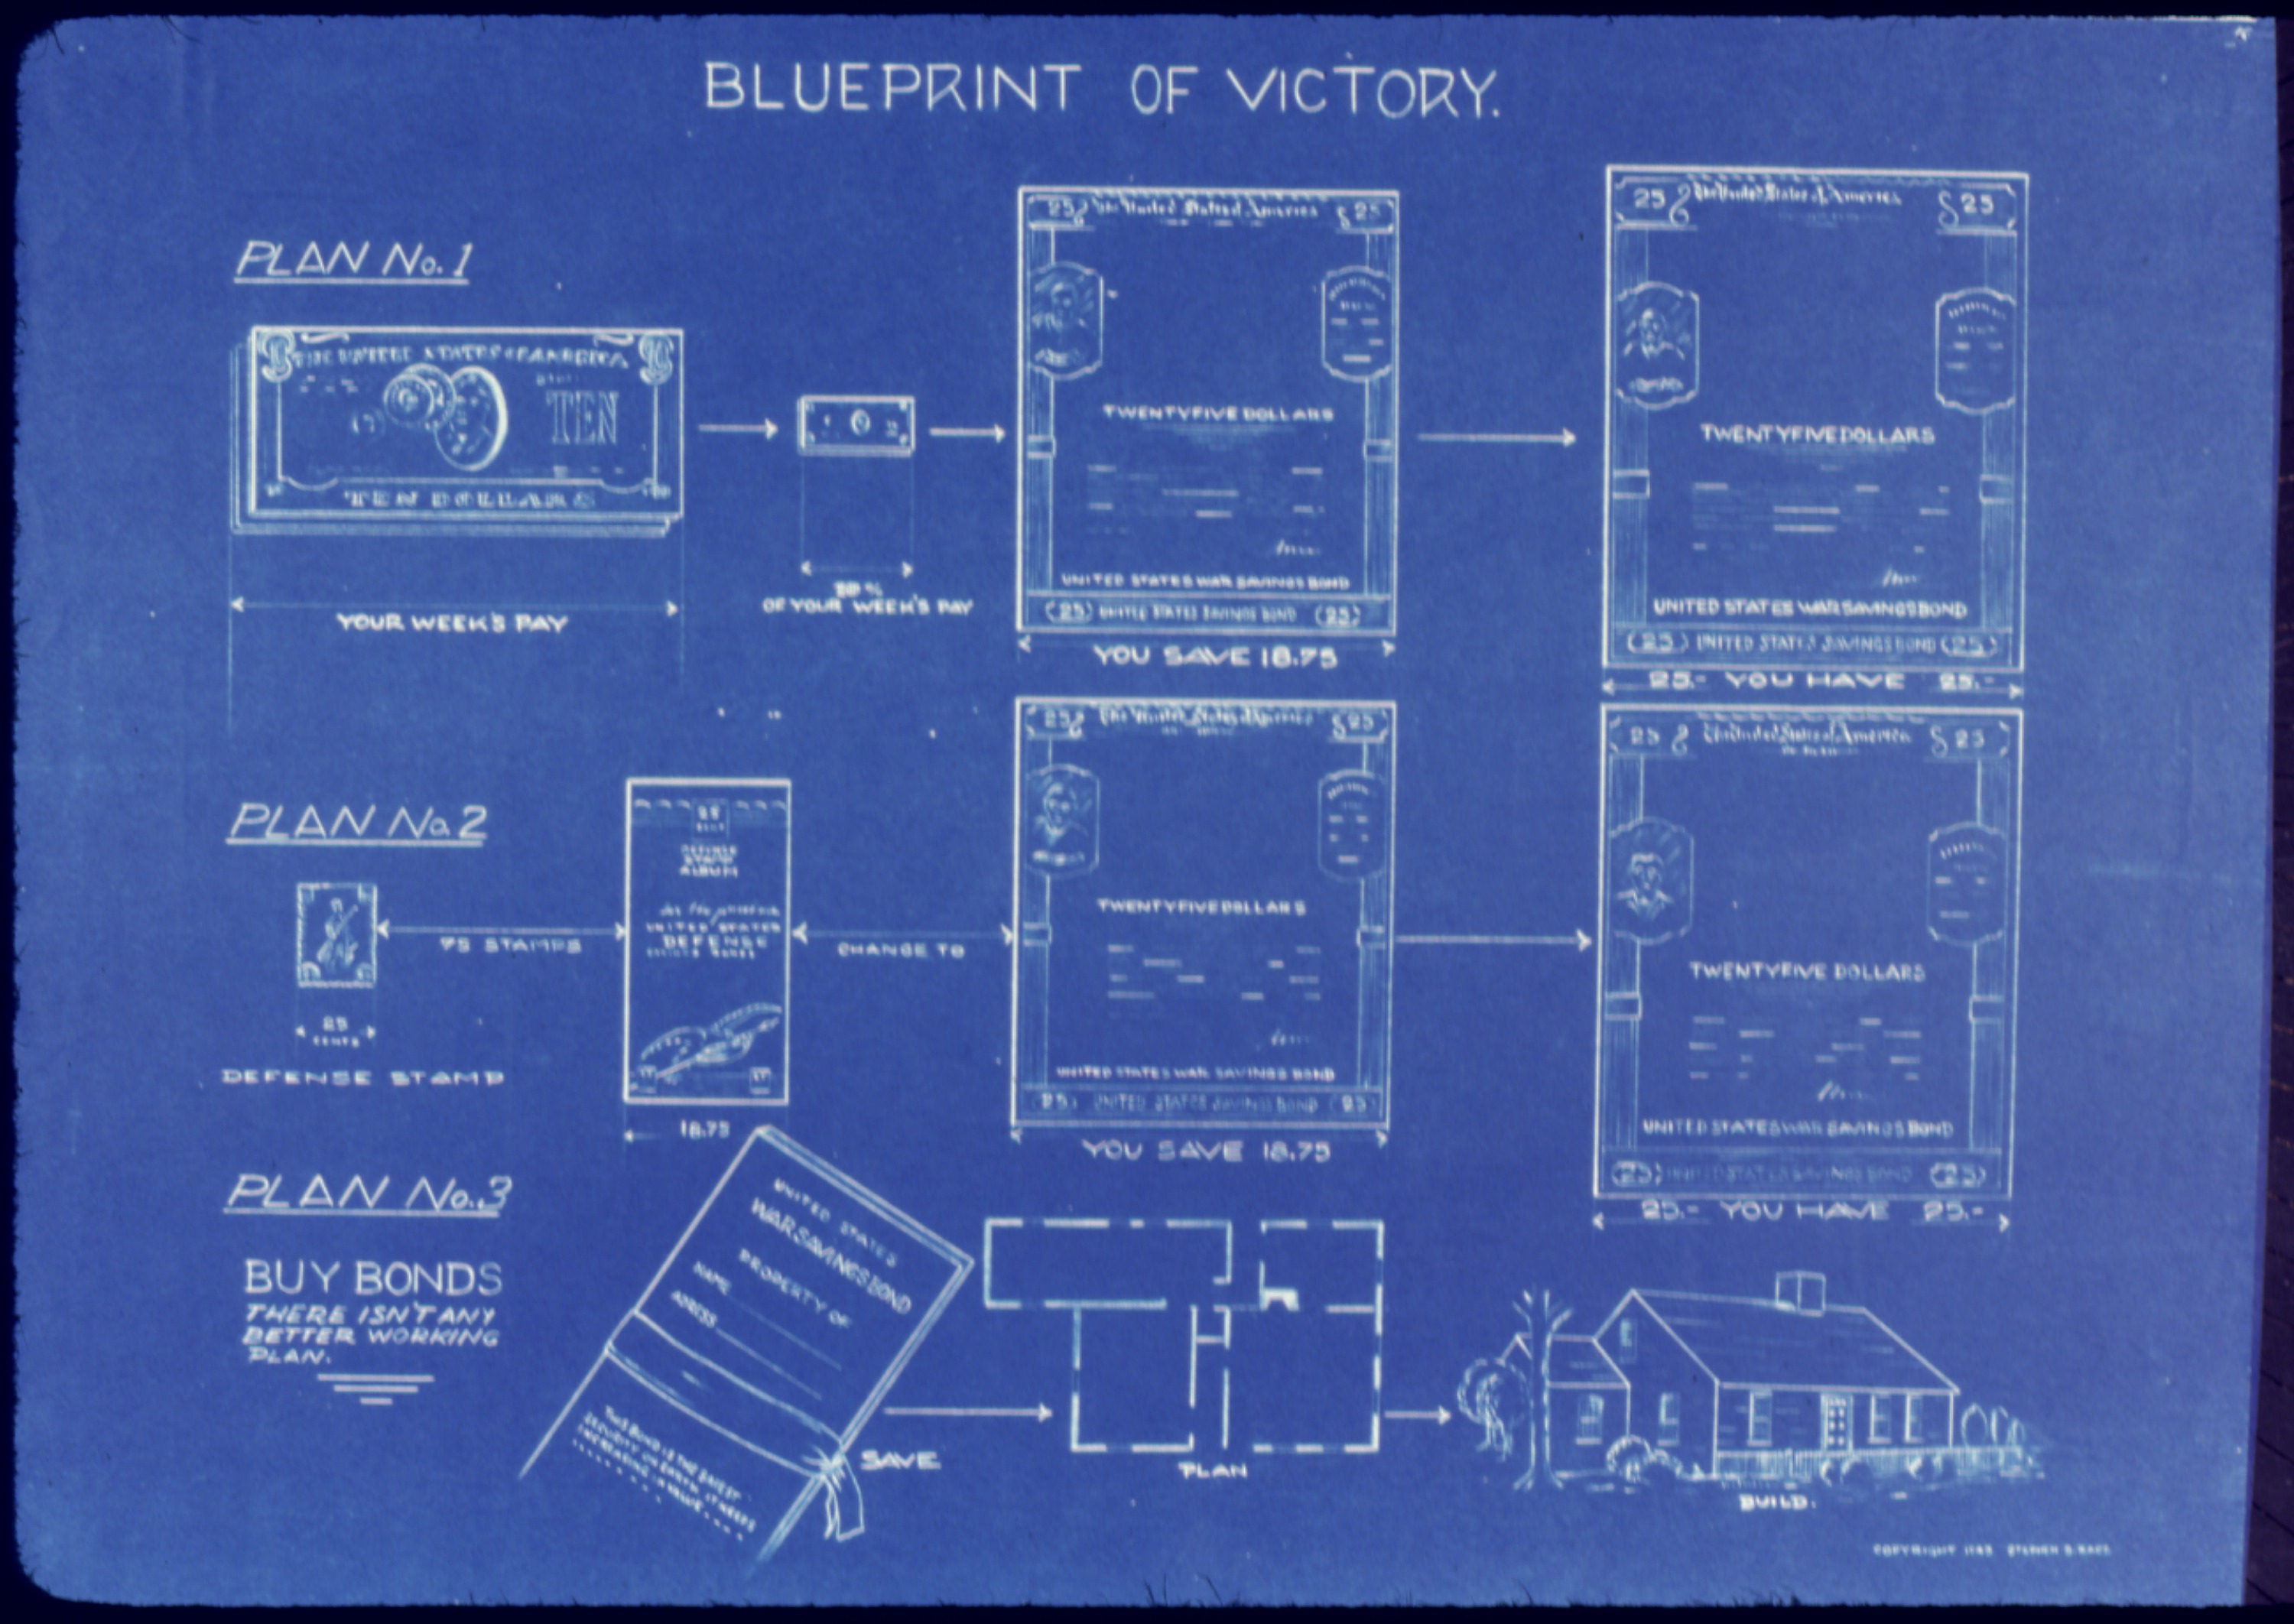 file blueprint of victory nara wikimedia